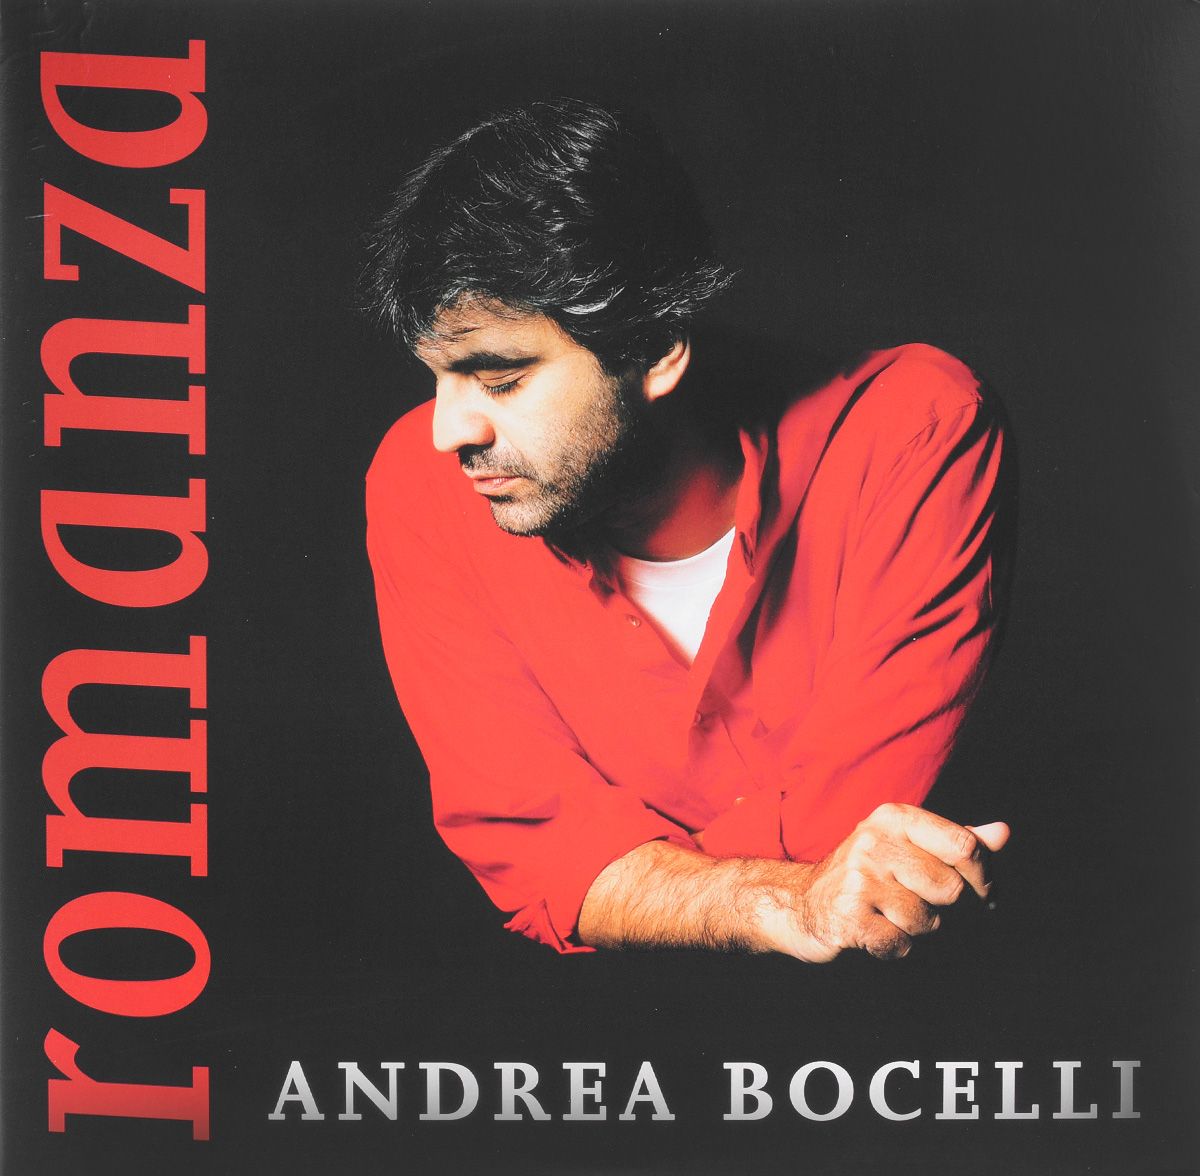 Андреа Бочелли Andrea Bocelli. Romanza (2 LP) андреа бочелли брин терфел марина домашенко дэльфин хэйдан тьерри феликс nouvel orchestre philharmonique de radio france мюнг вун чунг andrea bocelli bizet carmen 2 cd